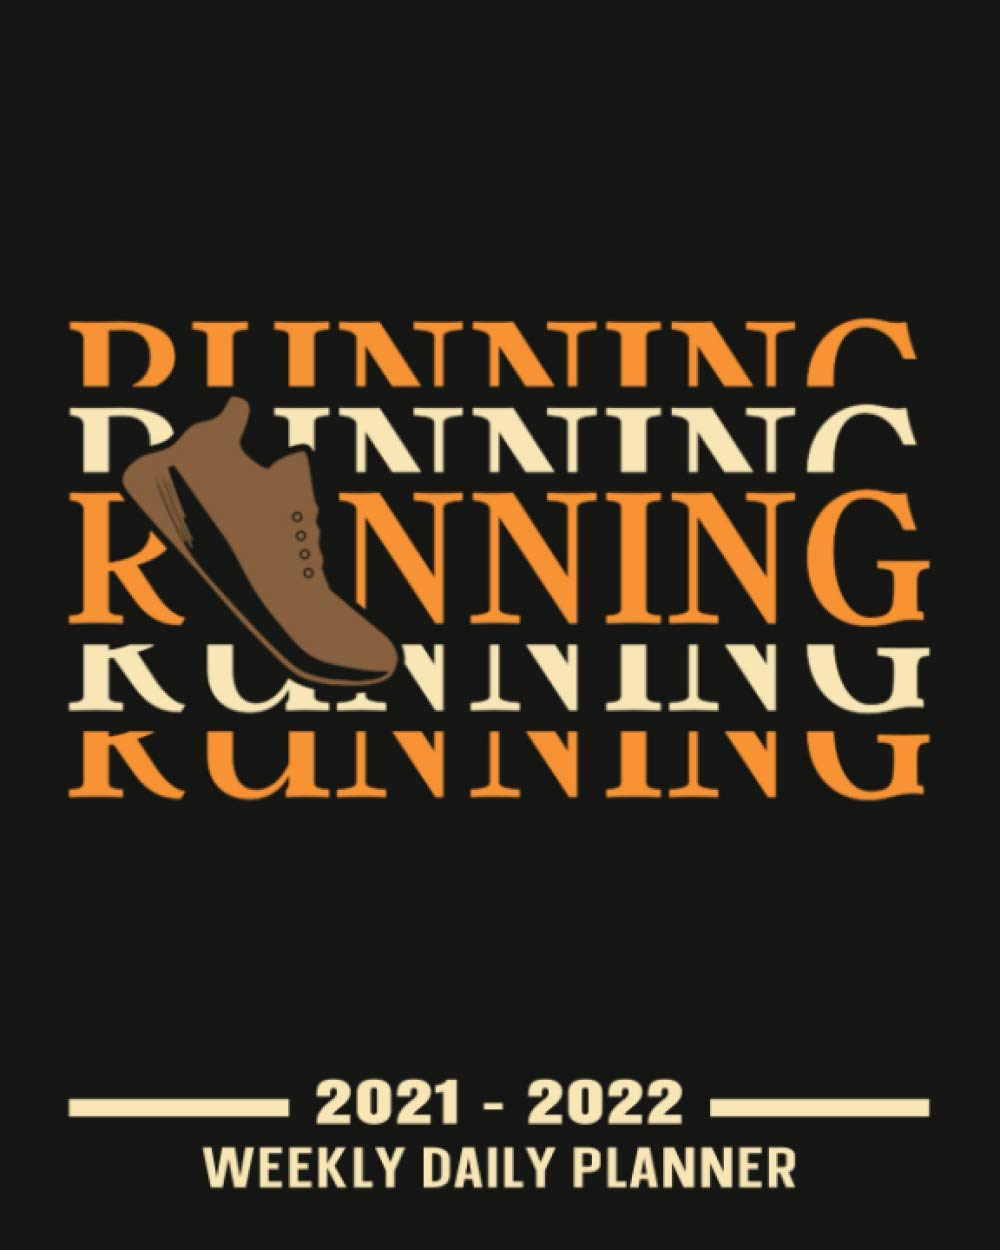 Running: Funny Running Weekly Planner 2021 - 2022 With No Date ( Undated Planner|106 Weeks Organizer| 8x10 inches ) To Write Plan Daily, Weekly For ... Gifts For Running Lovers And All Runners